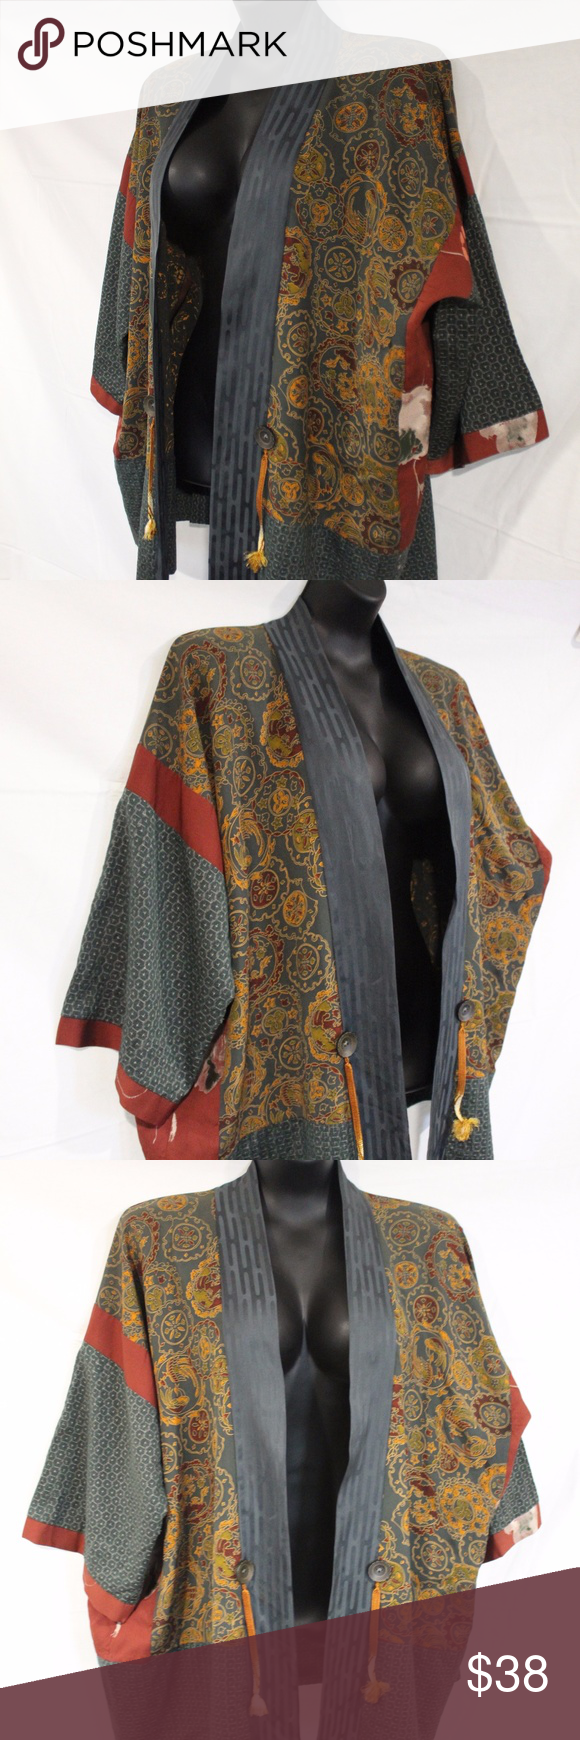 Kimono jacket japanese fabric womenus of a kind mixing prints